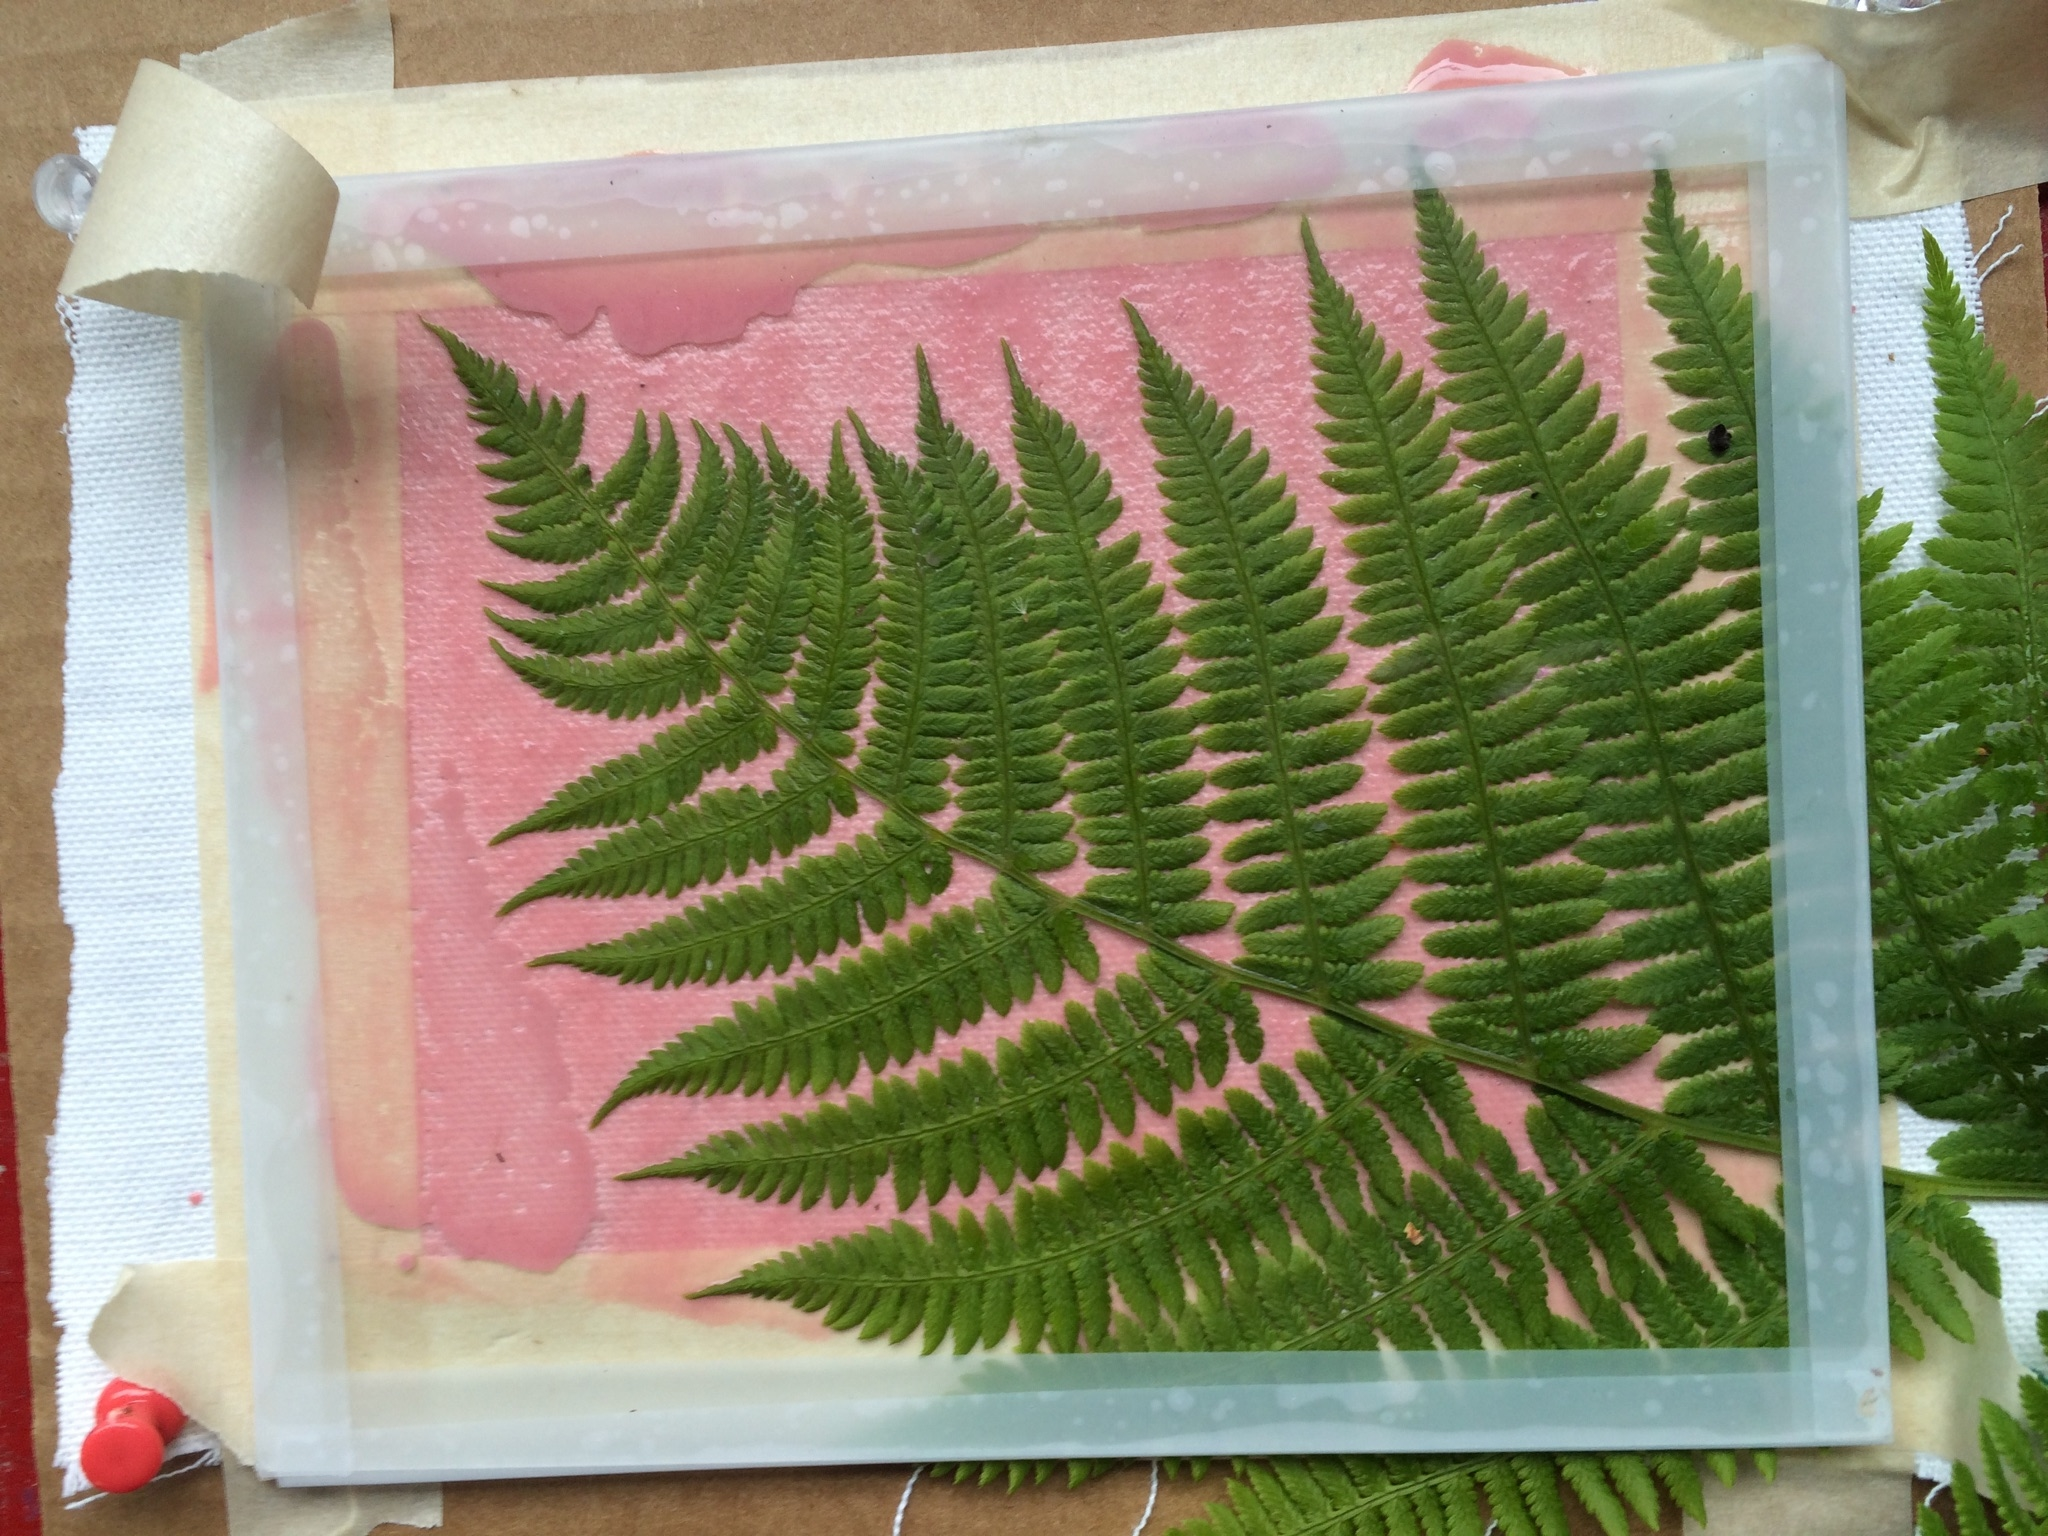 Making a photogram with a fern